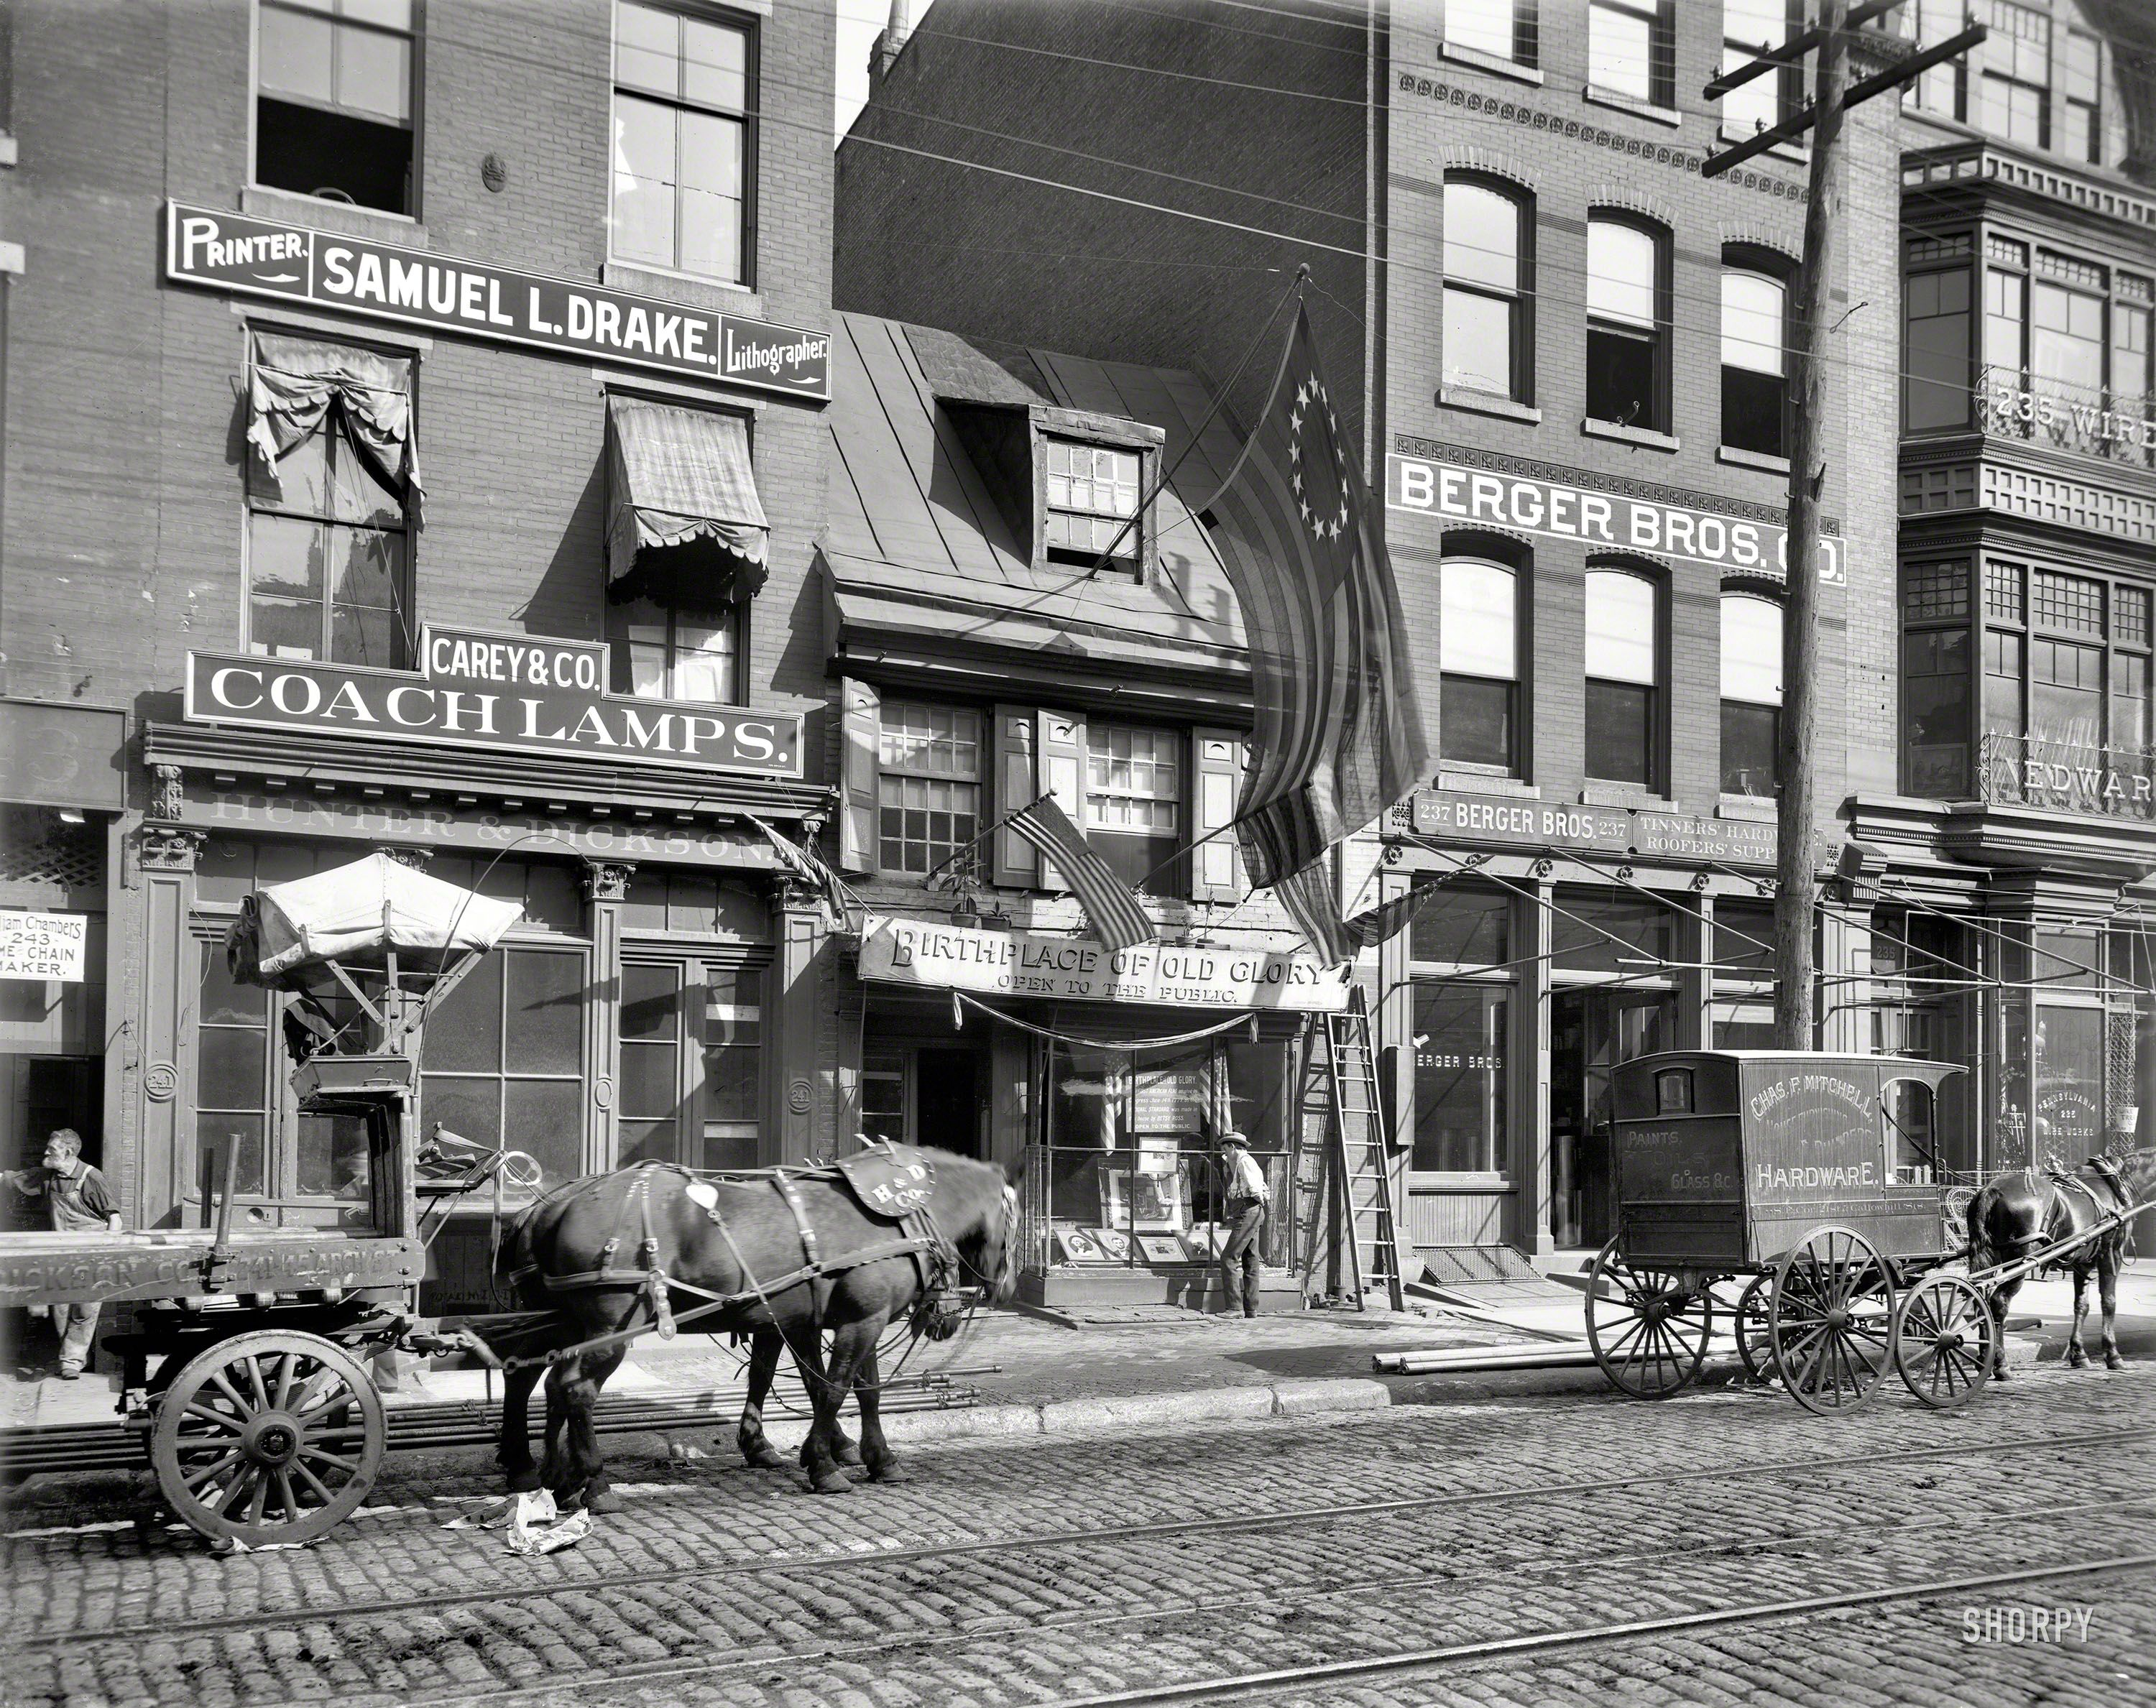 Circa 1900. Betsy Ross House, Philadelphia. Our second look at Jack the horse. 8x10 inch glass ...